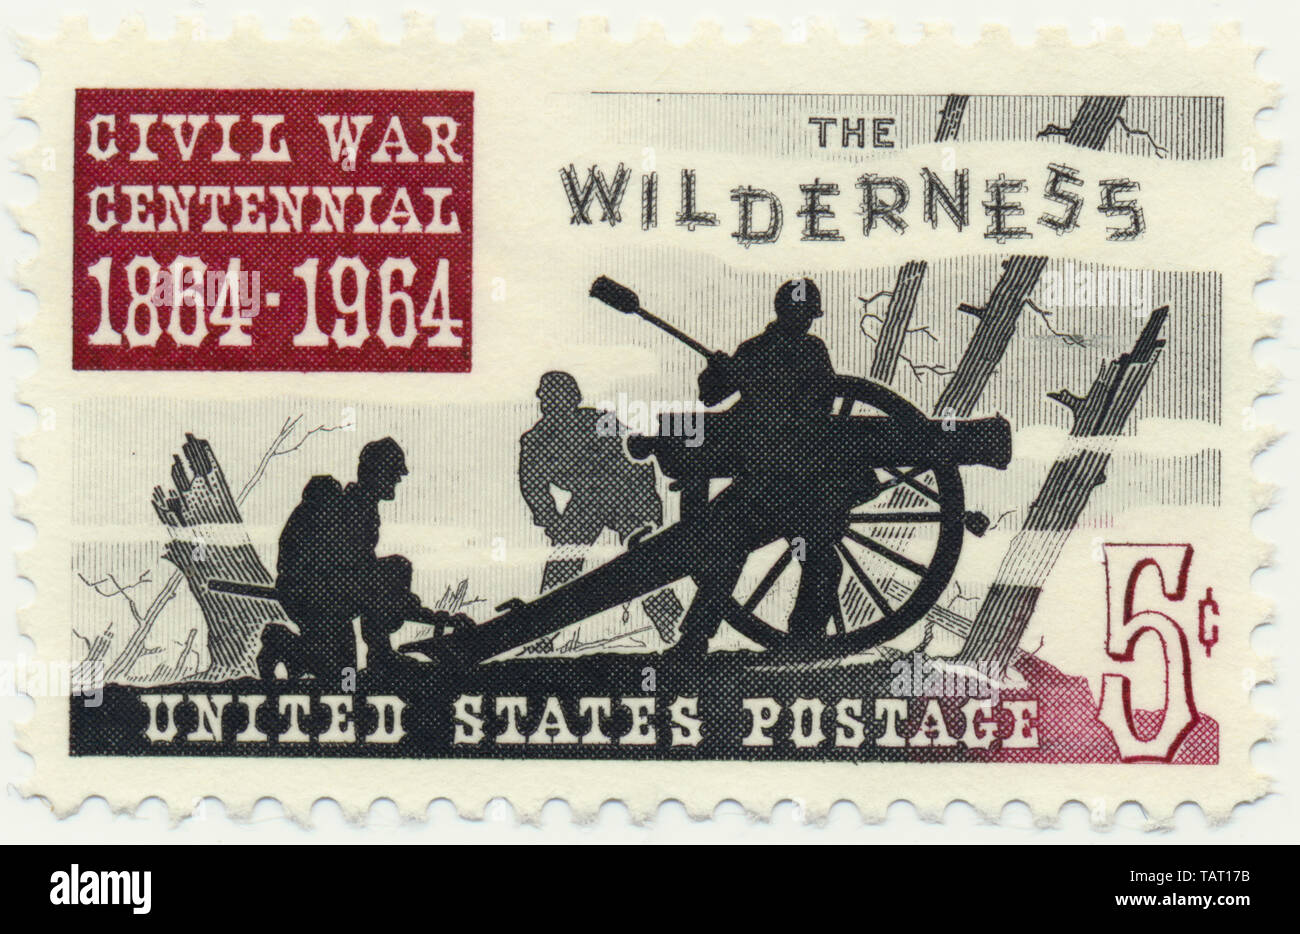 Historic postage stamp, Battle of the Wilderness, a battle of the American Civil War, Historische Briefmarken, 1964, Battle of the Wilderness, eine Schlacht im Amerikanischen Bürgerkriegs, 1864, Virginia, USA - Stock Image